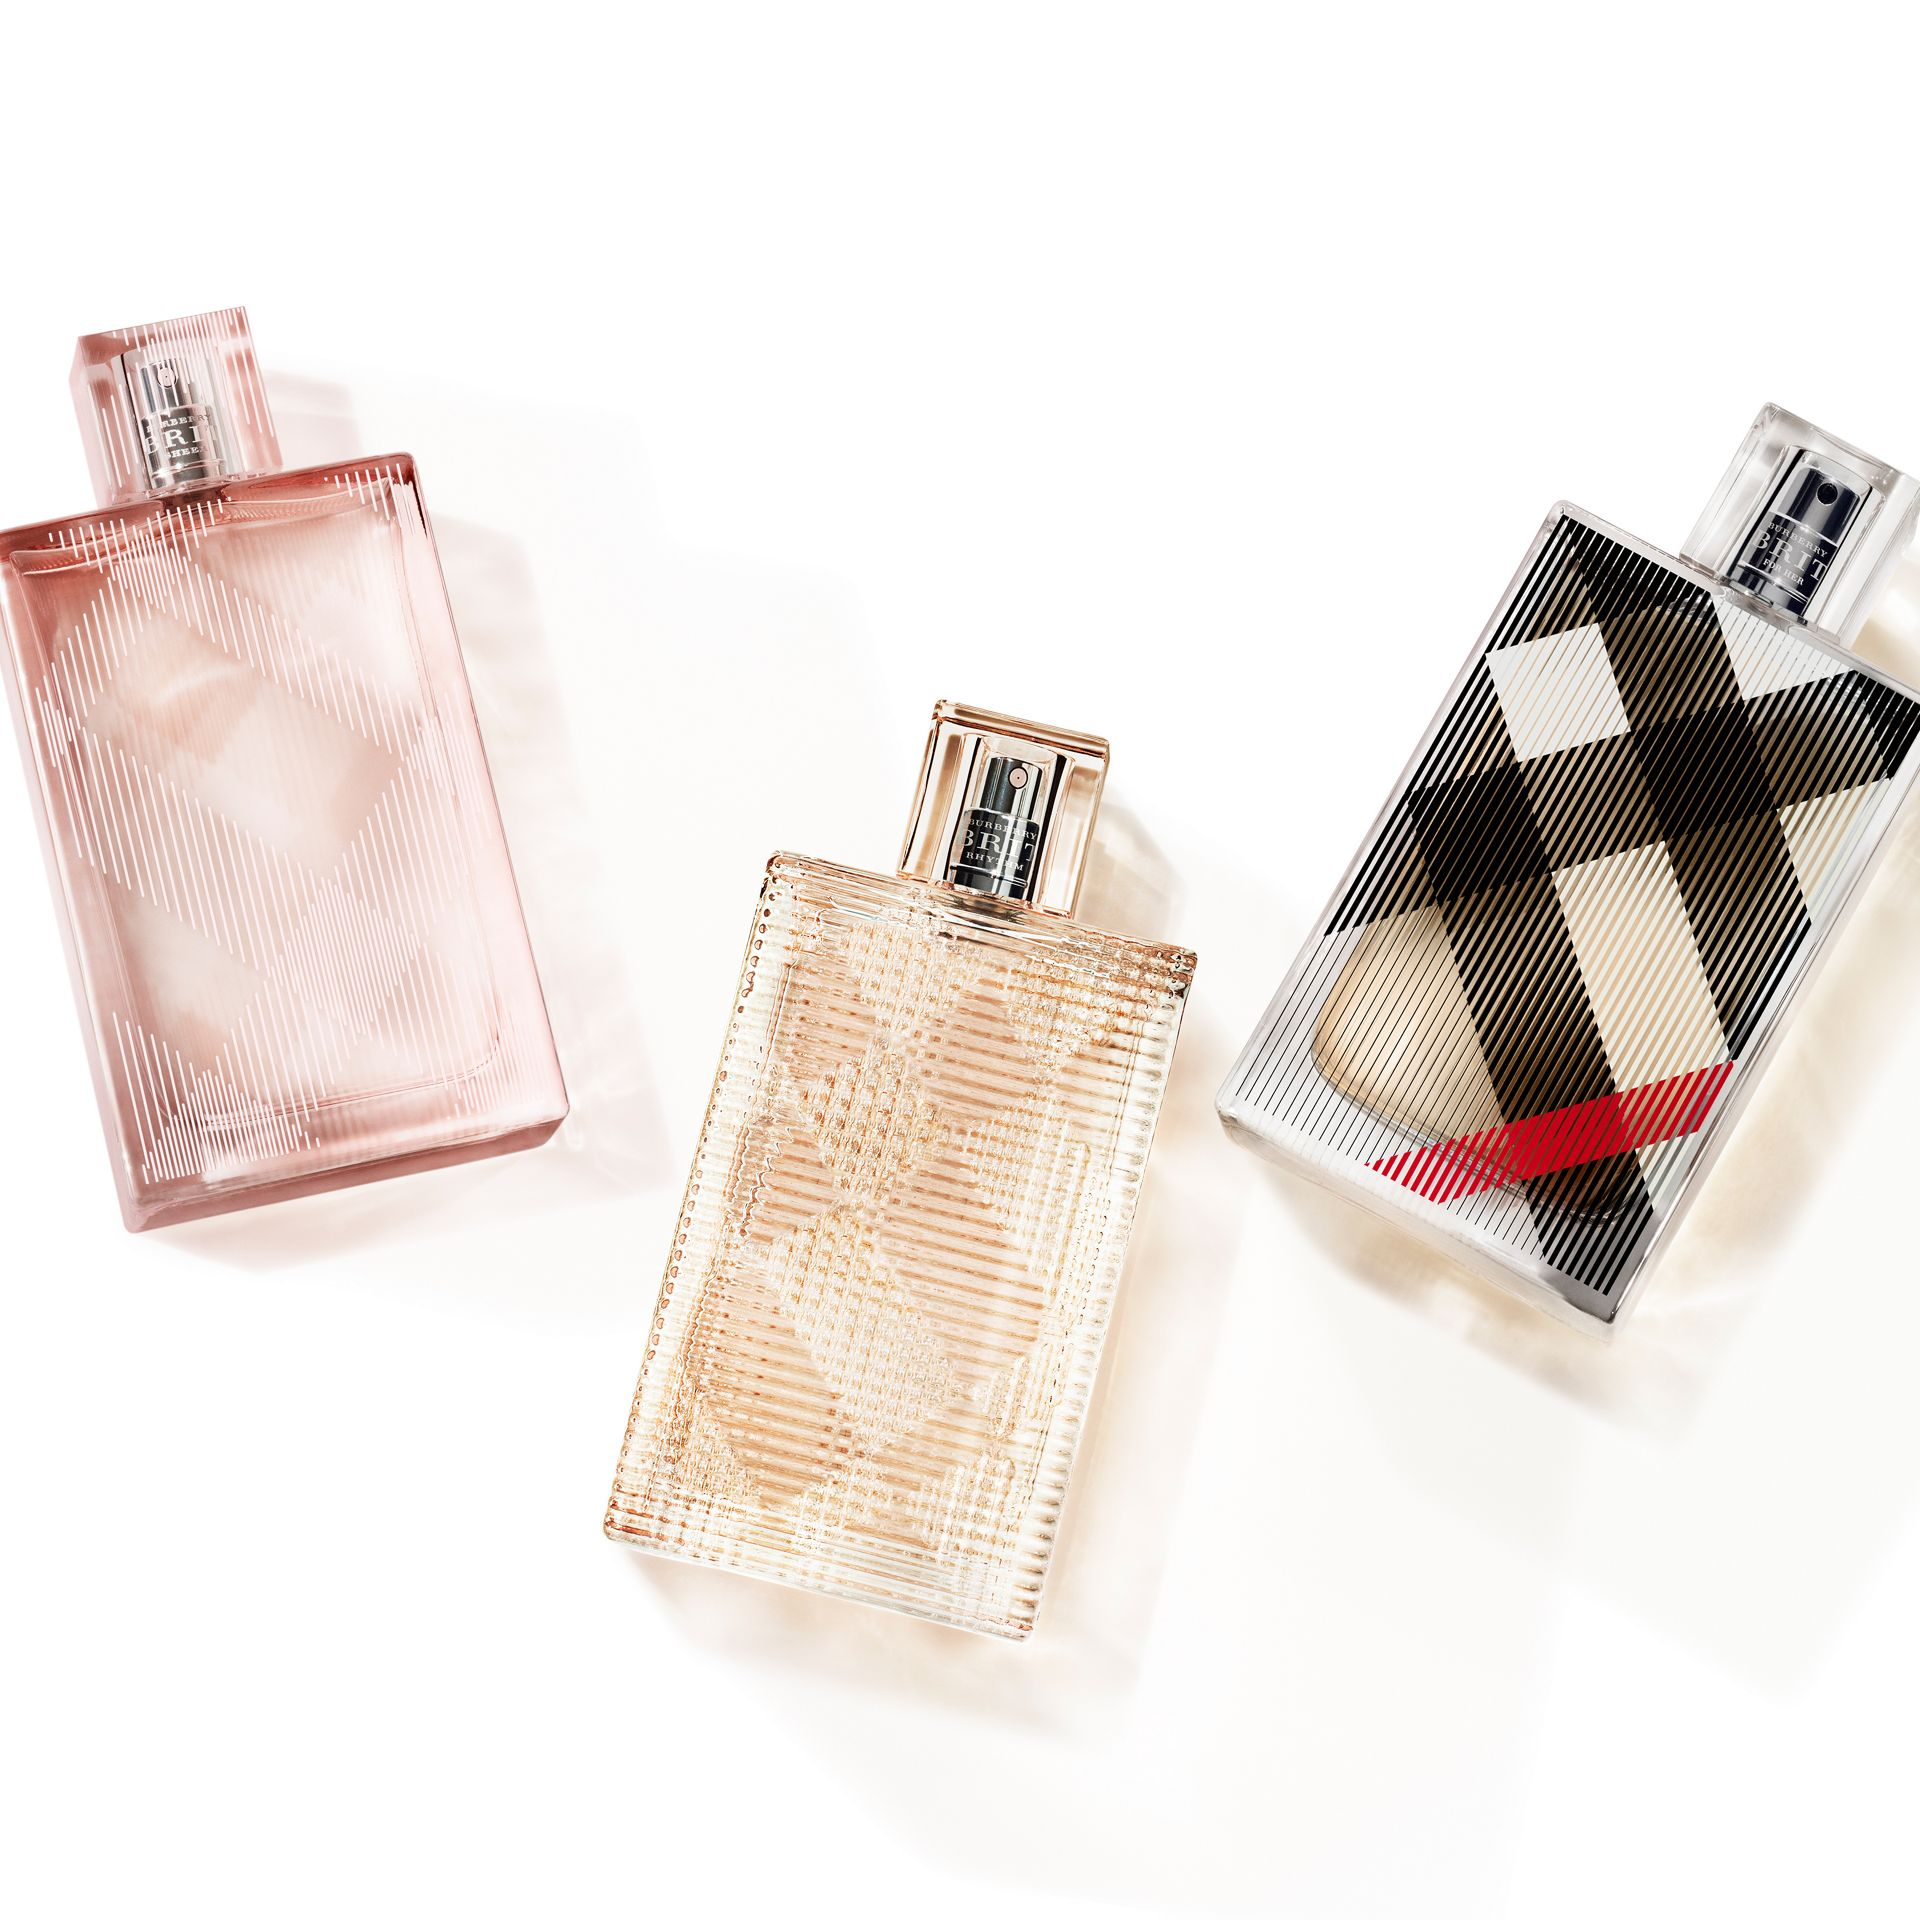 Eau de Parfum Burberry Brit for Her 50 ml - Femme | Burberry - photo de la galerie 4